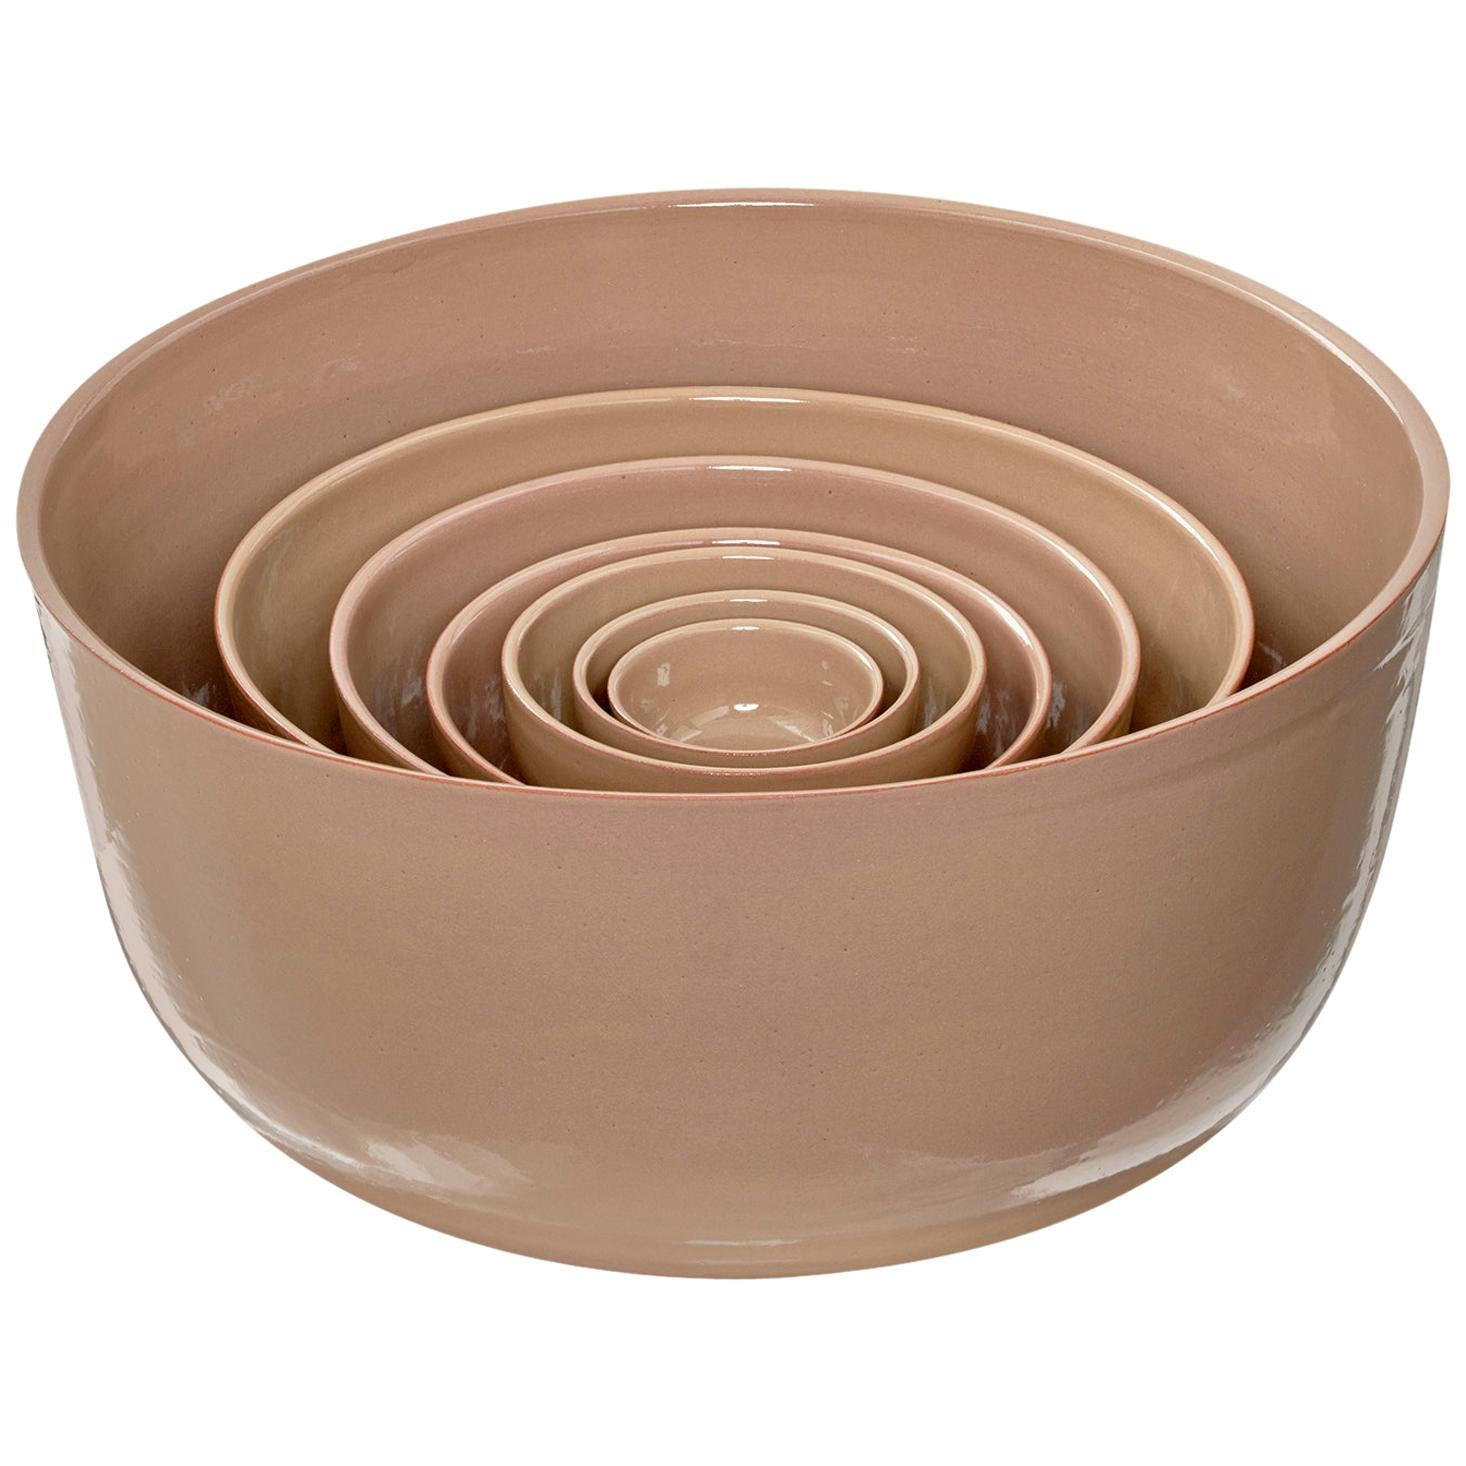 "Set of 7 Brown Ceramic Bowls ""GIRO"" by Julie Richoz"